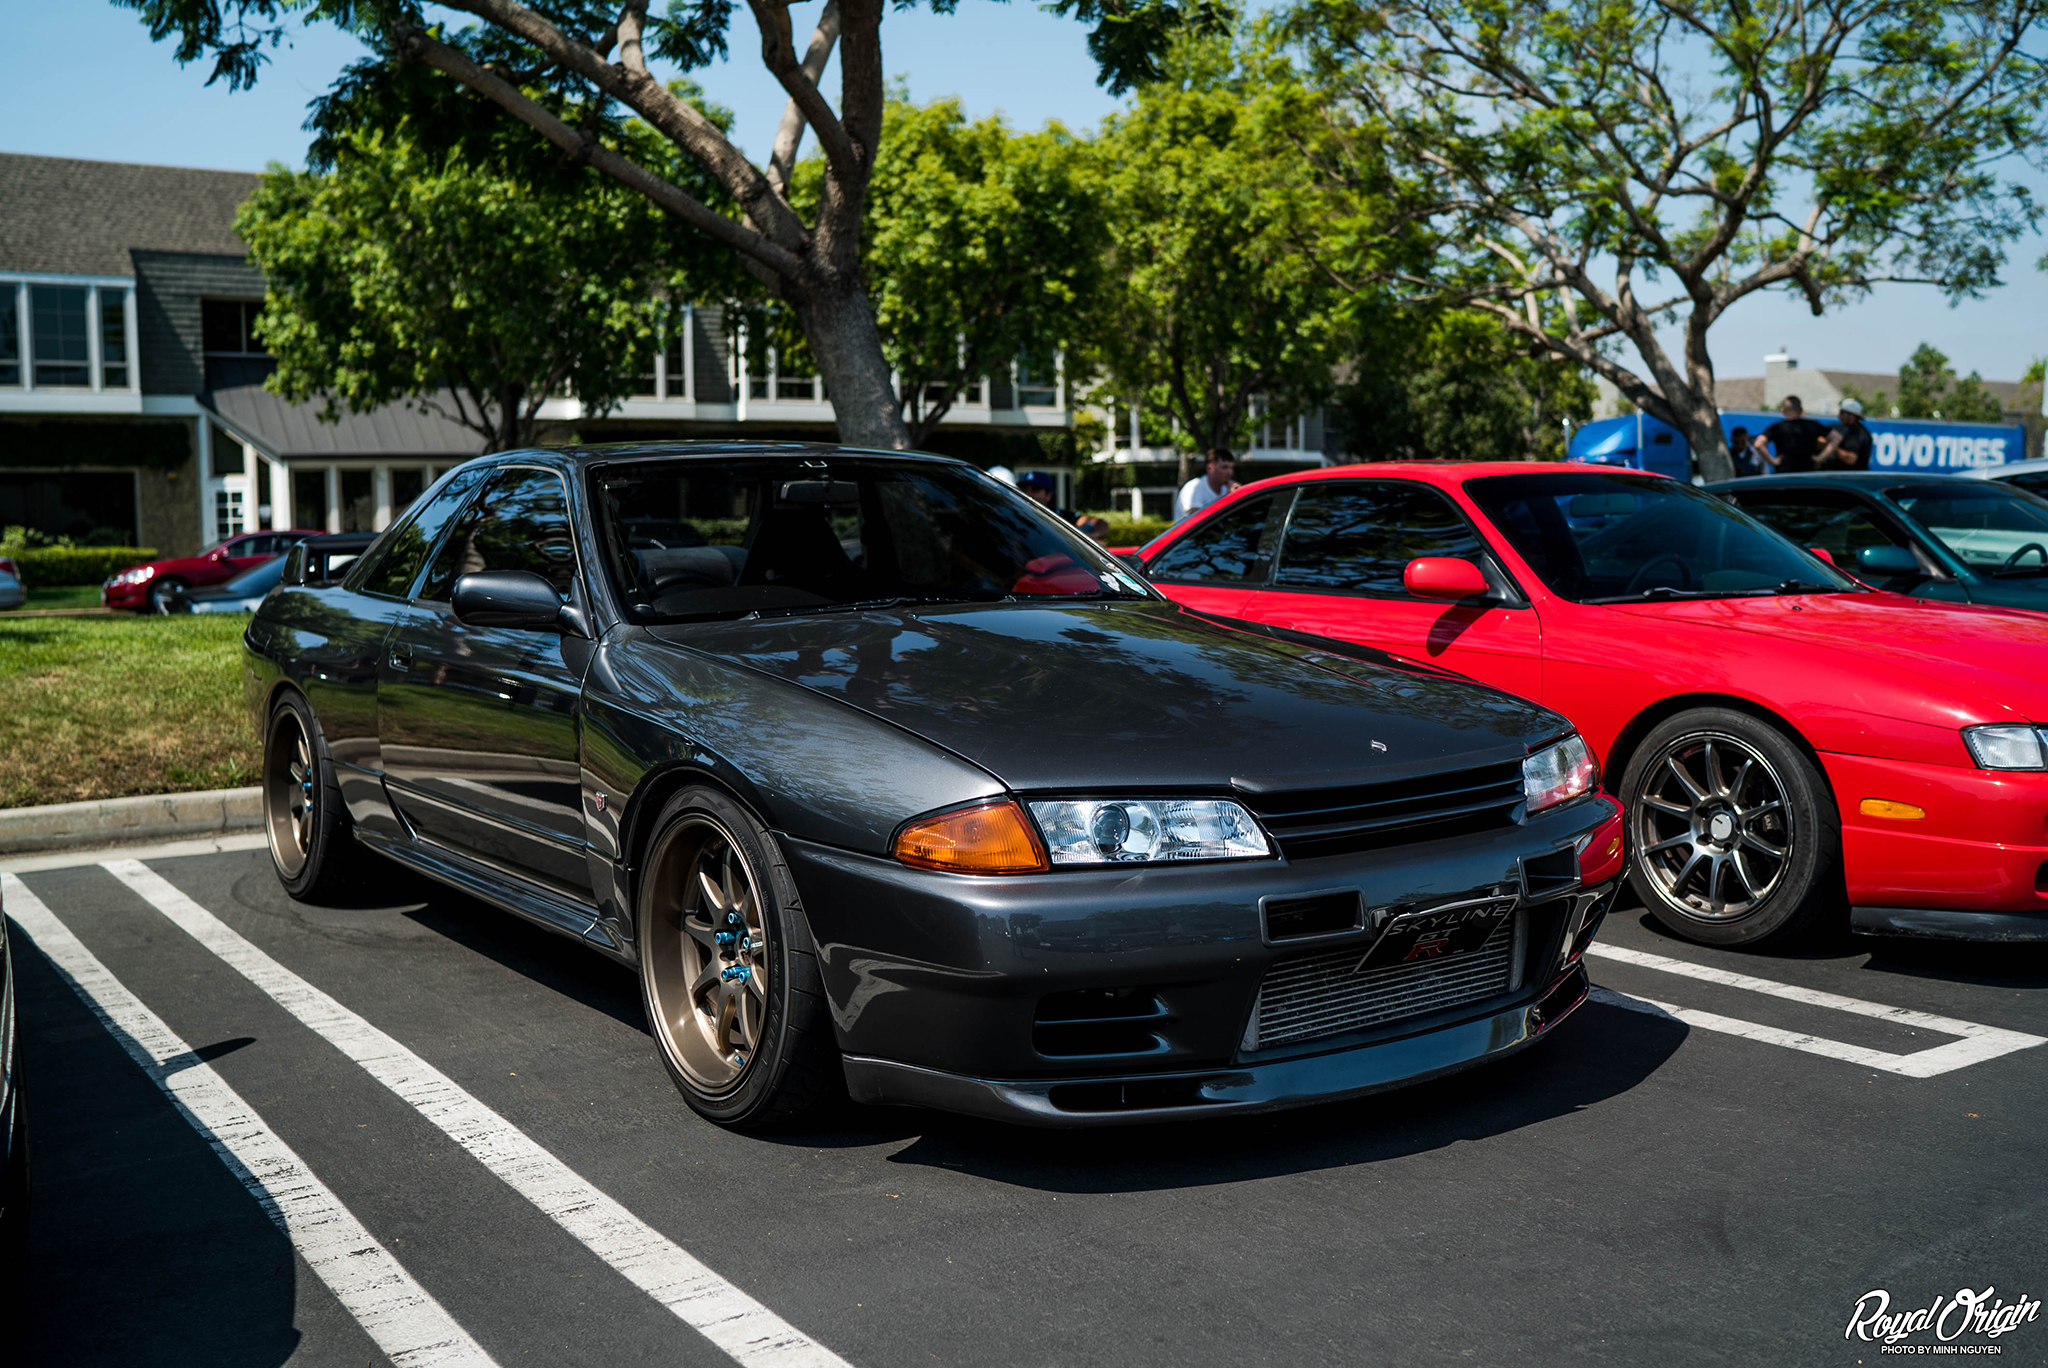 Shutter Space By Toyo Tires Event Coverage Royal Origin - Car meets today near me